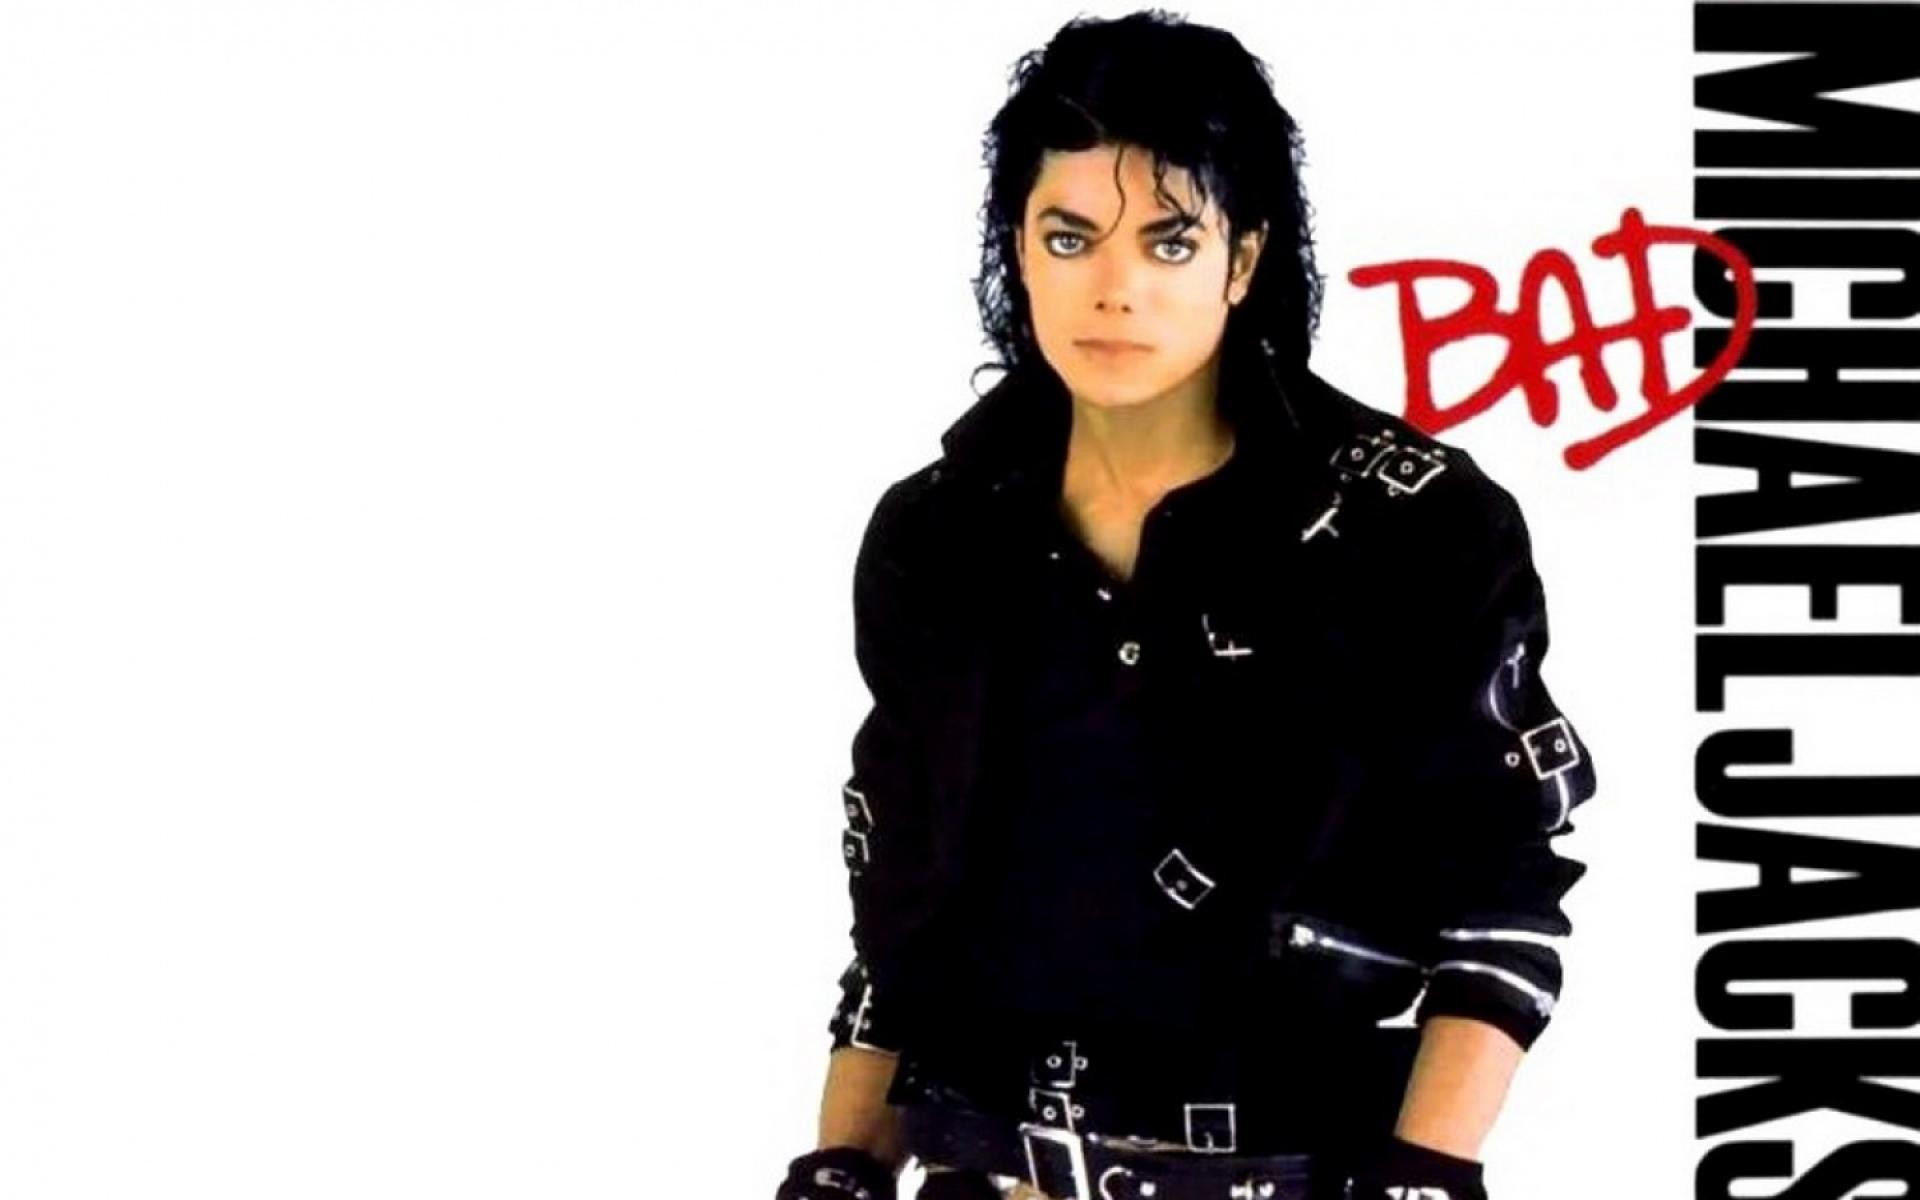 1920x1200 Michael Jackson wallpaper Male Celebrity wallpapers | HD Wallpapers |  Pinterest | Michael jackson, Hd wallpaper and Wallpaper